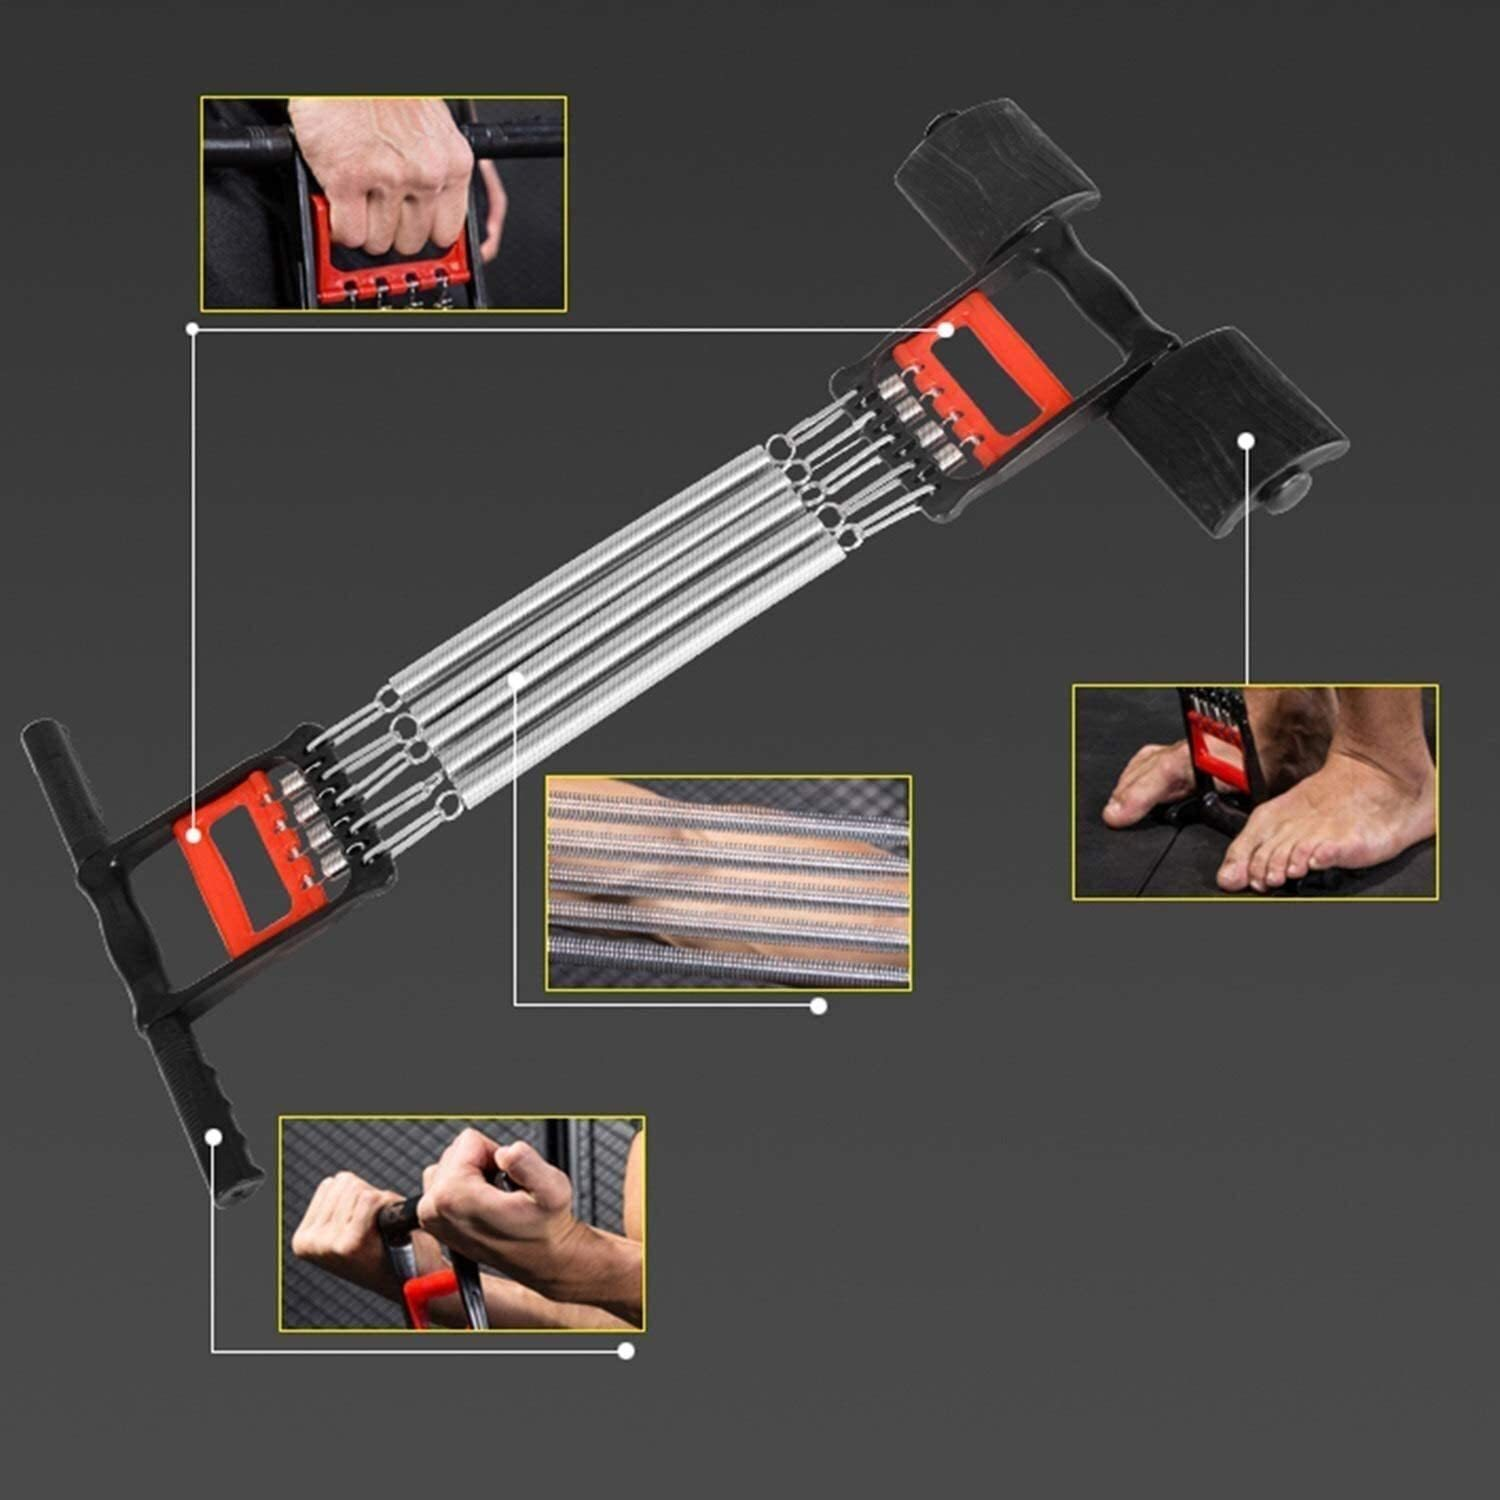 Spring Puller Chest Expander Multi-Function Men's Home Fitness Equipment Grip Arm Force Roll Back Training Elastic Pull Rope Fitness Equipment